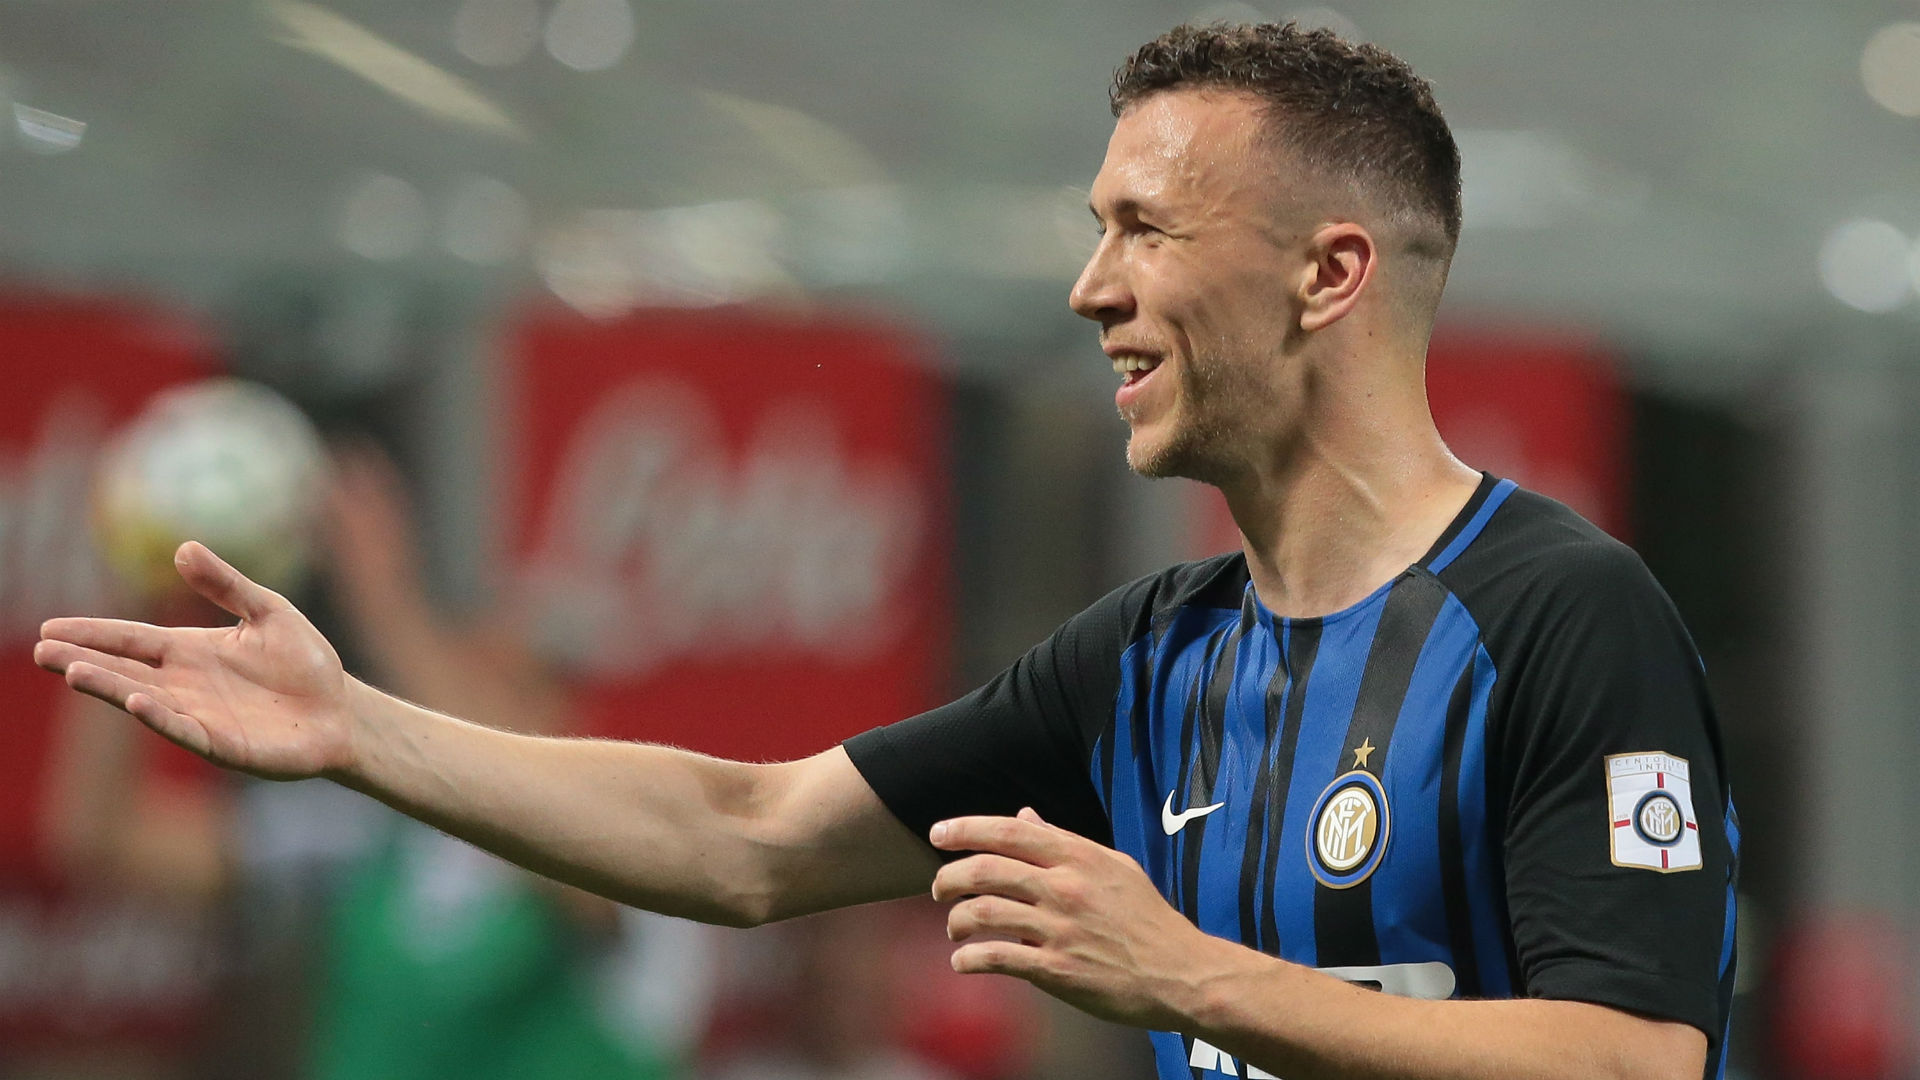 Inter Winger Perisic To Earn €4.5m At Bayern Munich